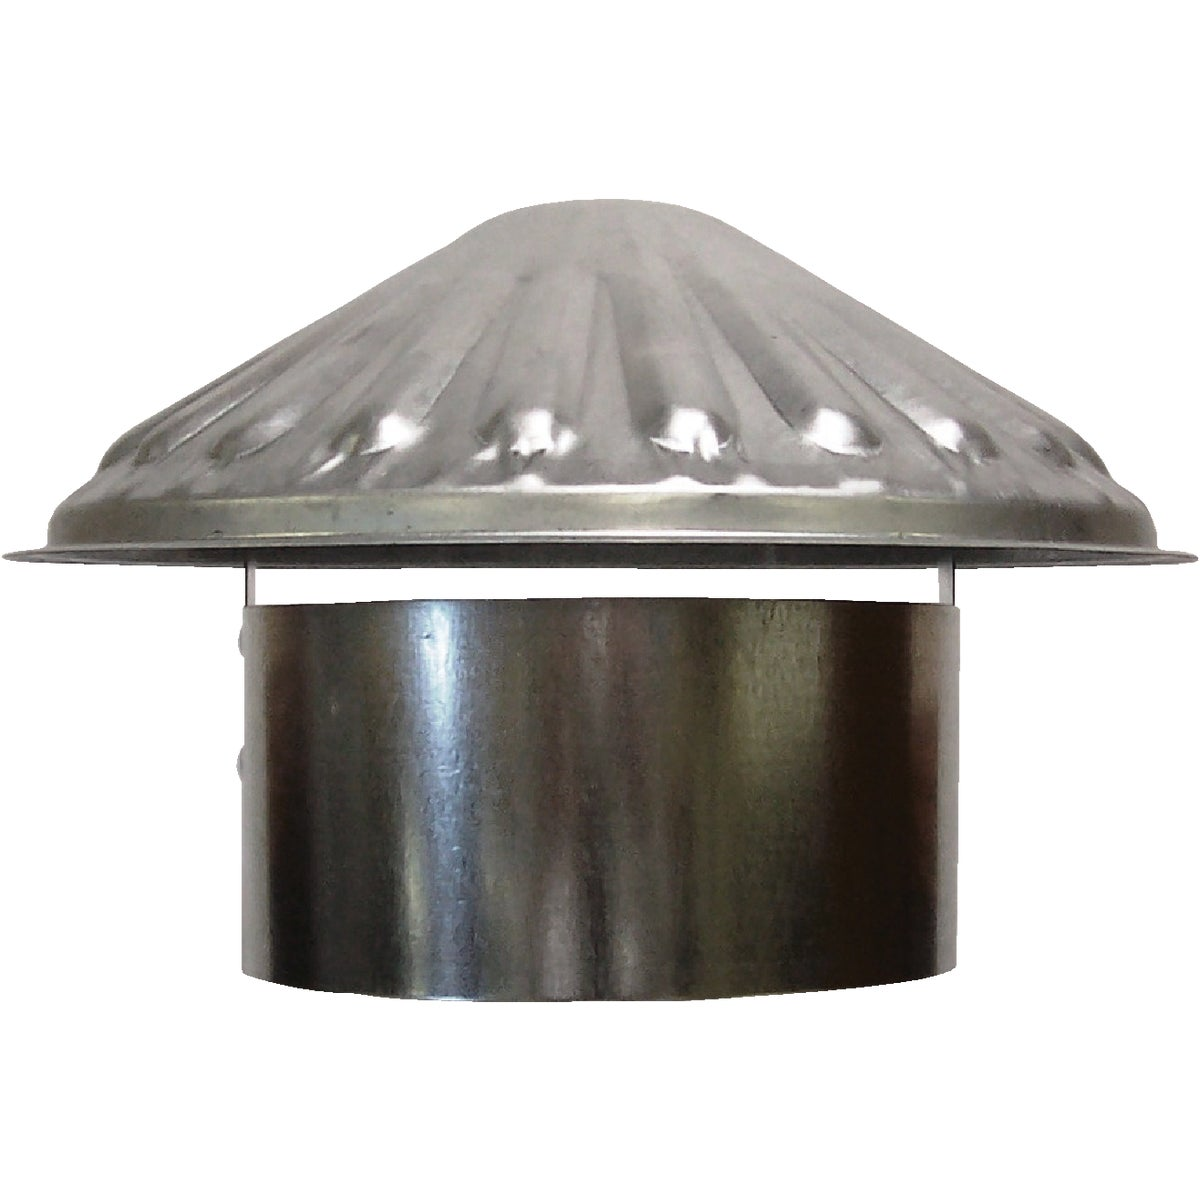 "6"" VENT PIPE CAP - D-286 by S & K Products Co"